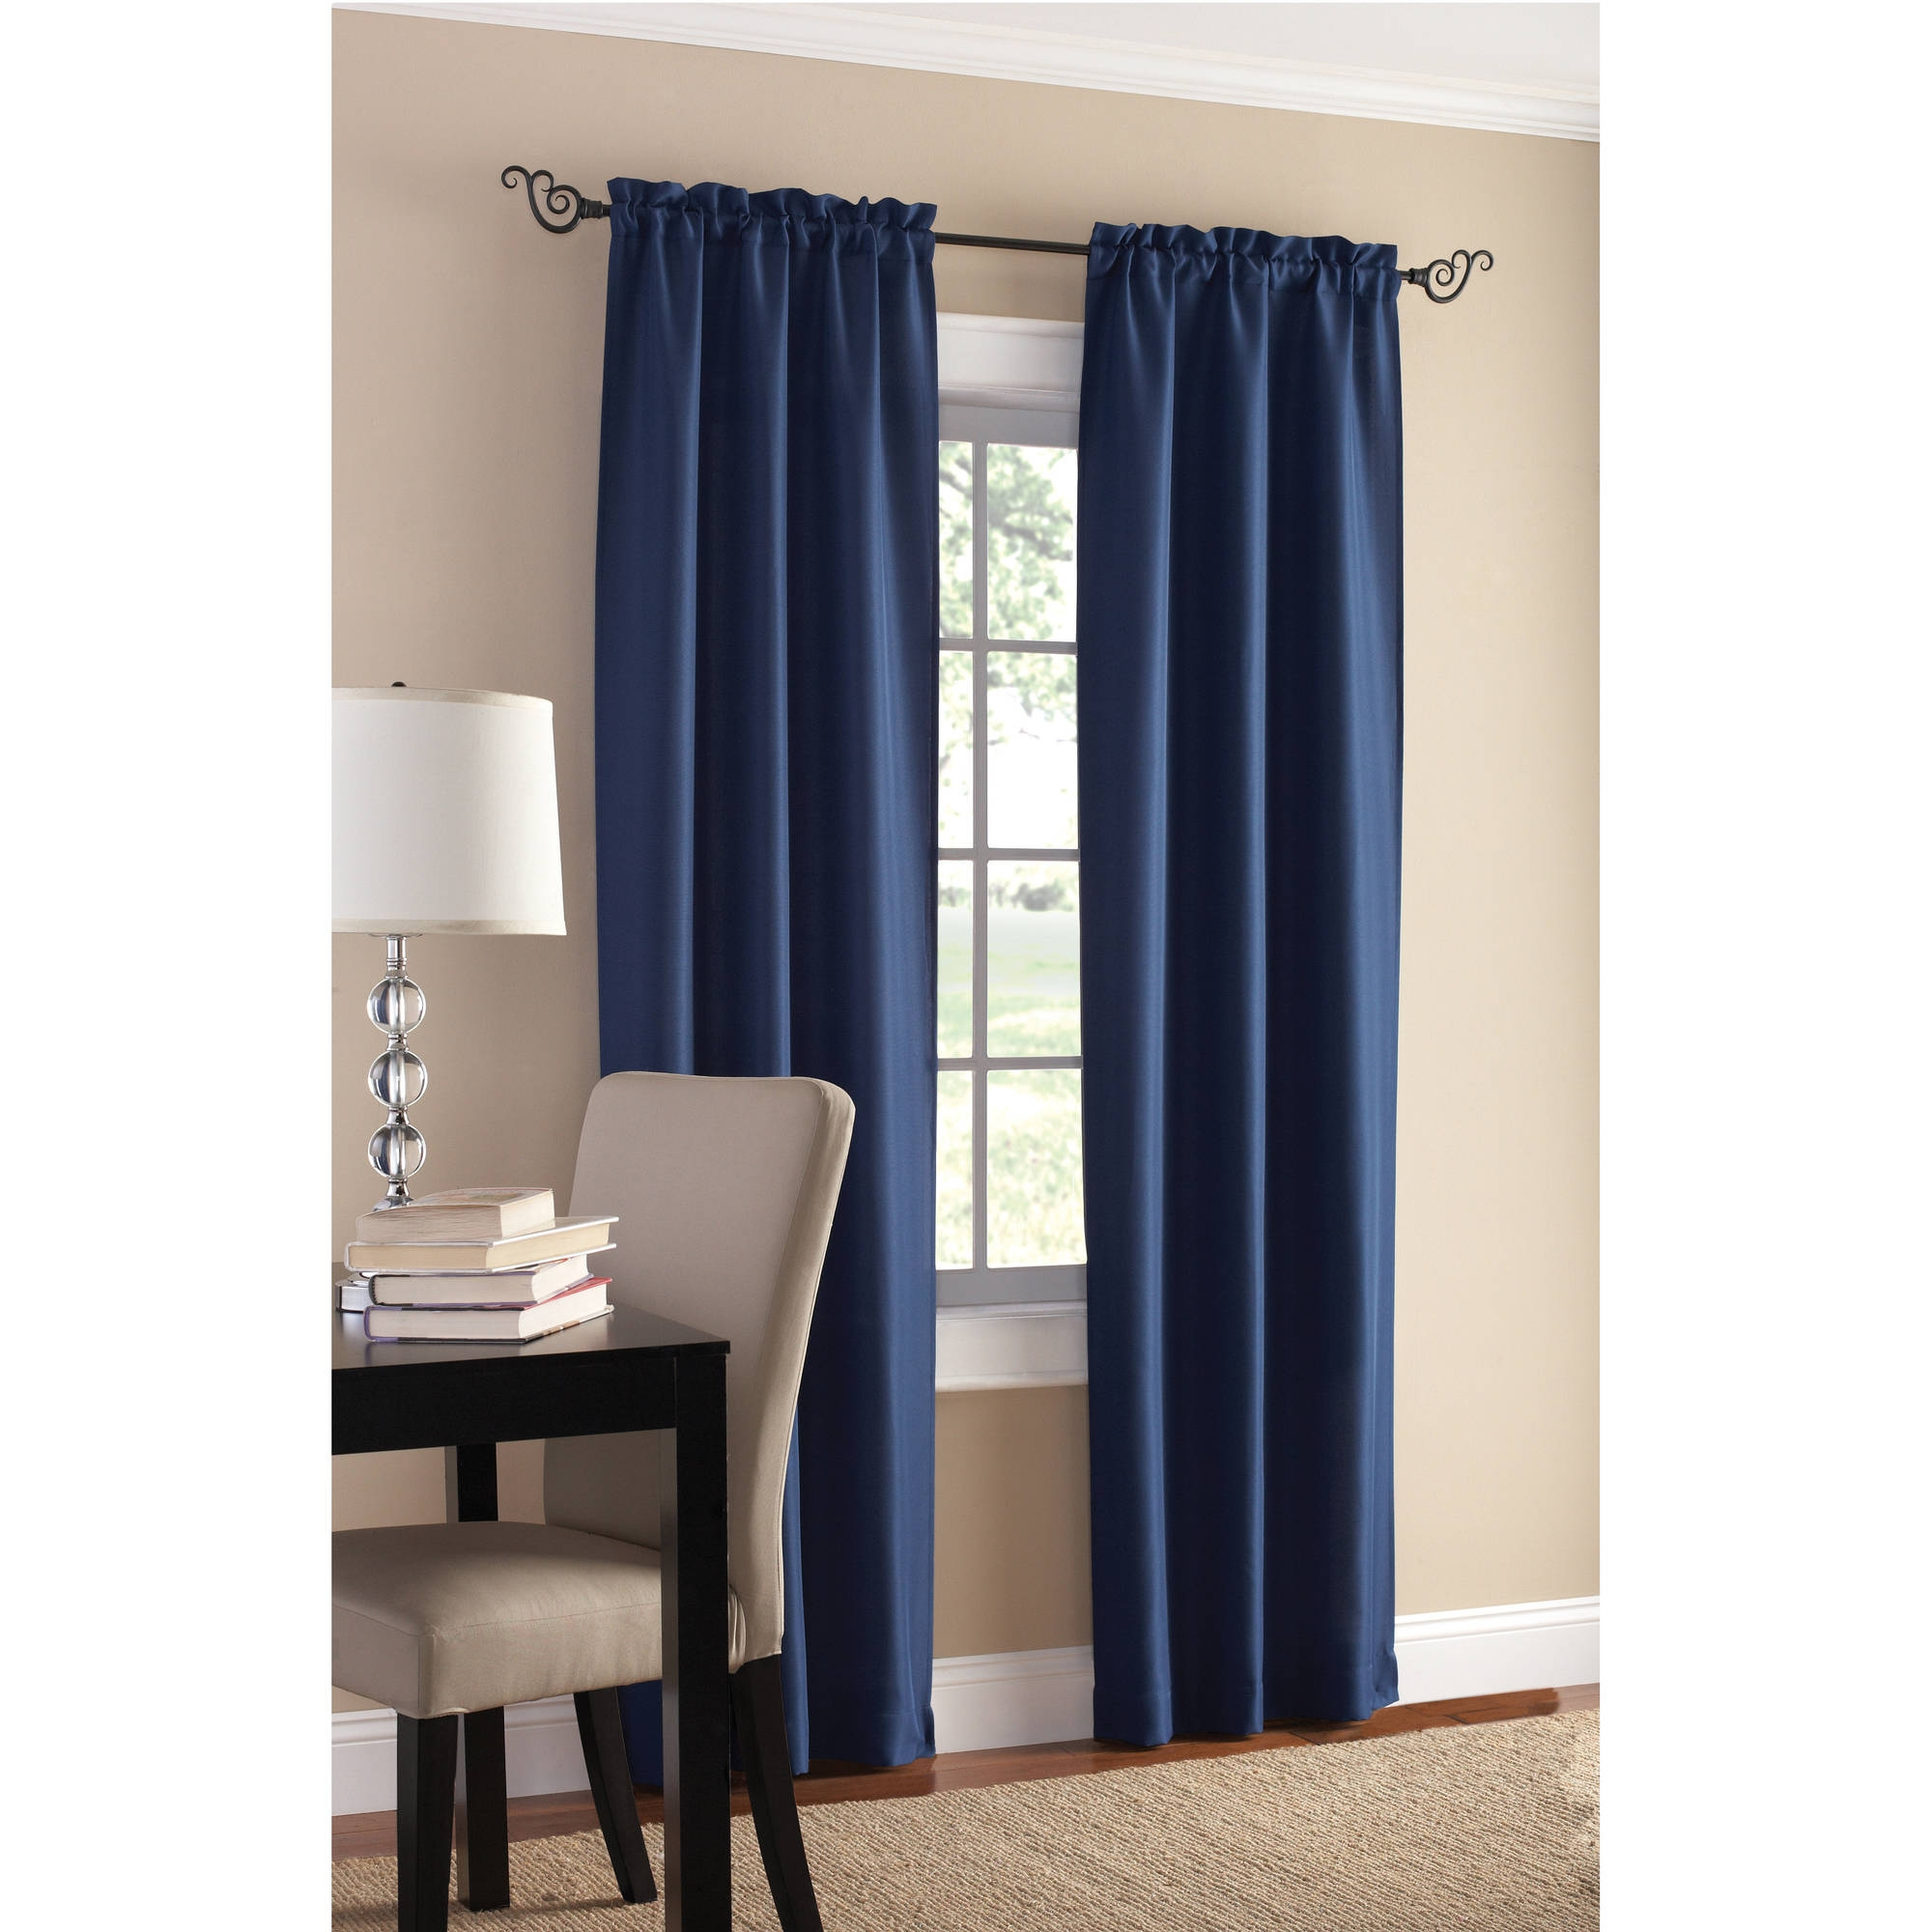 Mainstays Sailcloth Curtain Panel Set Of 2 Walmart With Regard To Navy And White Curtains (Image 11 of 25)